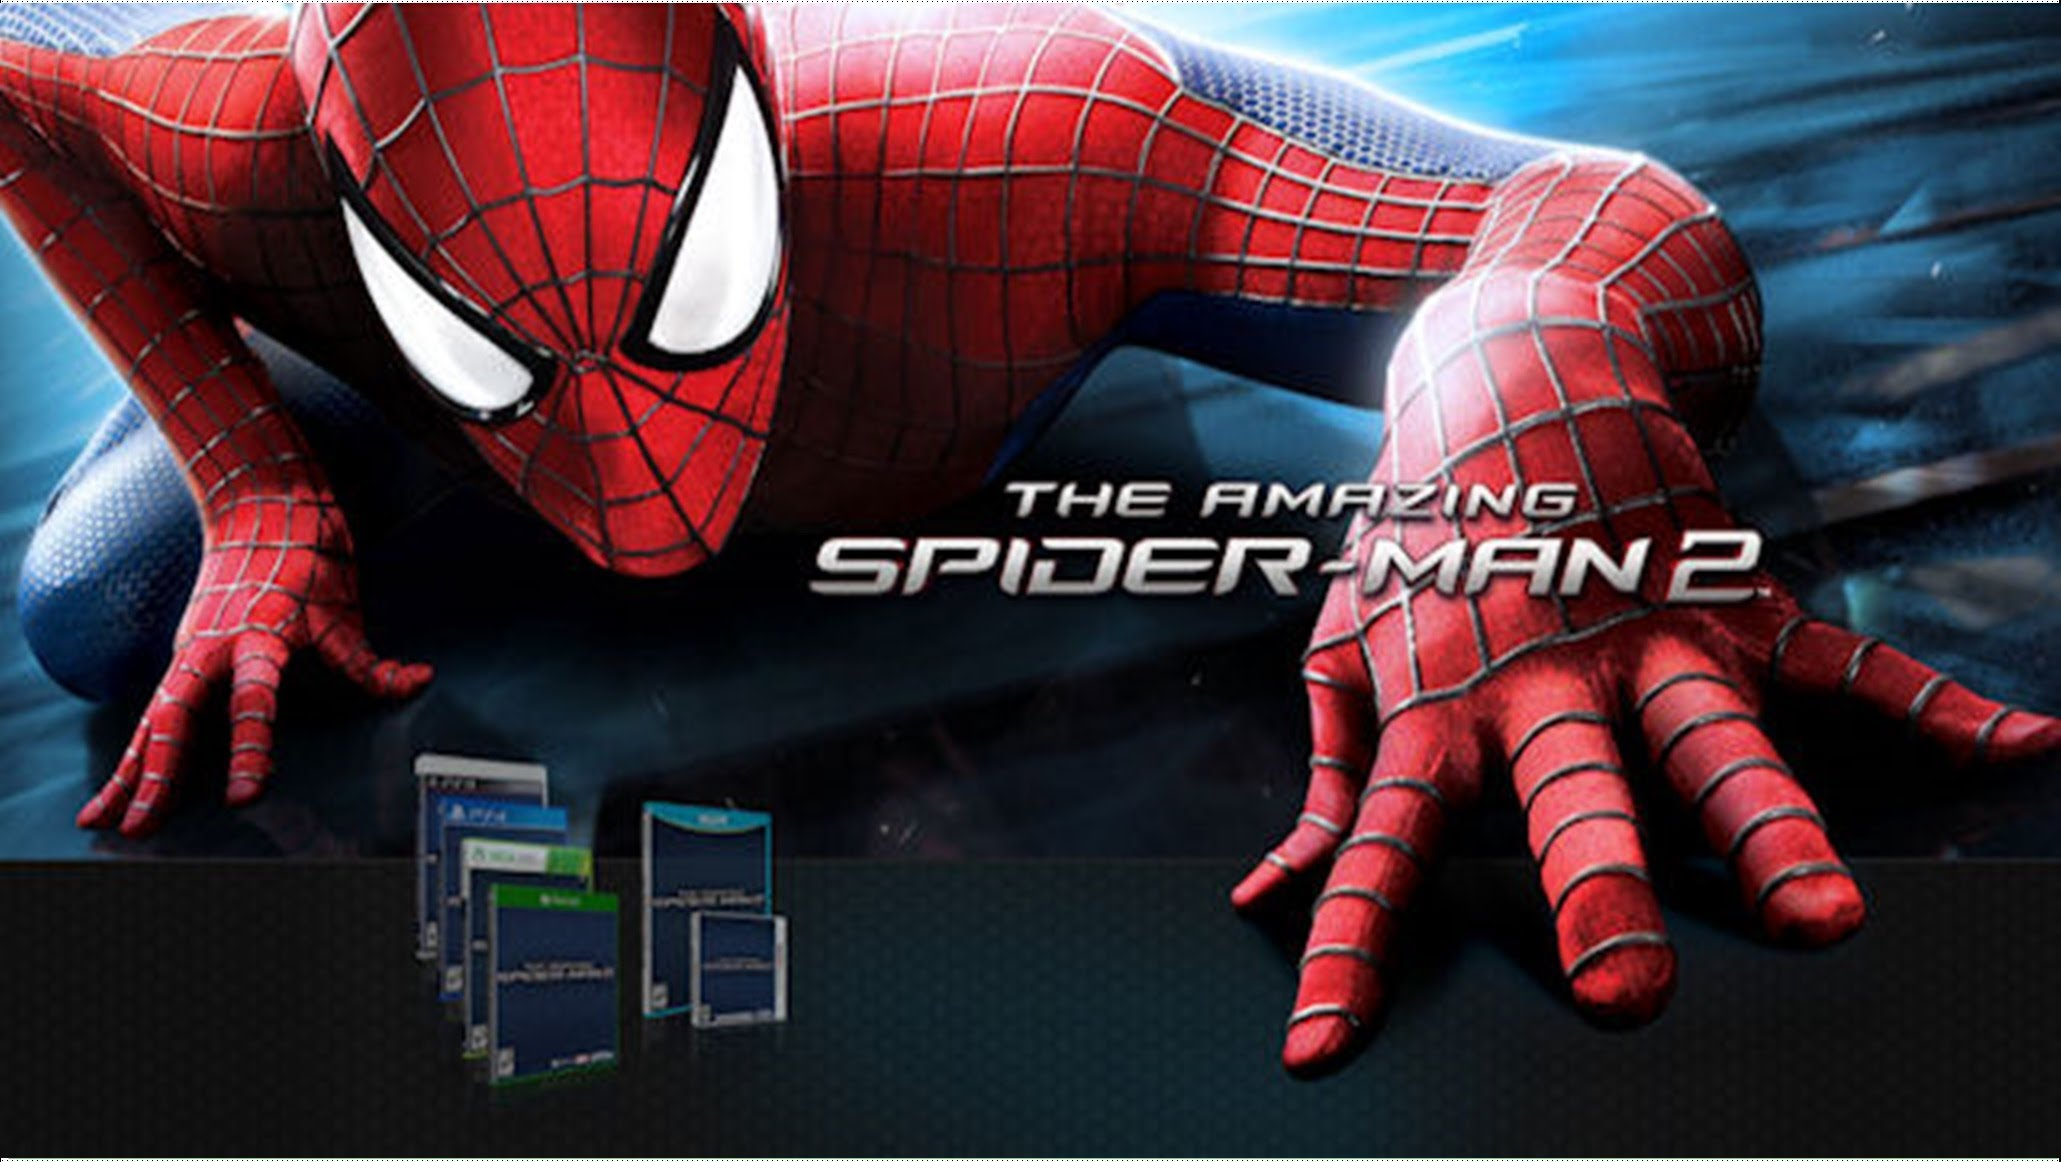 Free Download The Amazing Spider Man 2 Wallpaper Hd 2061x1162